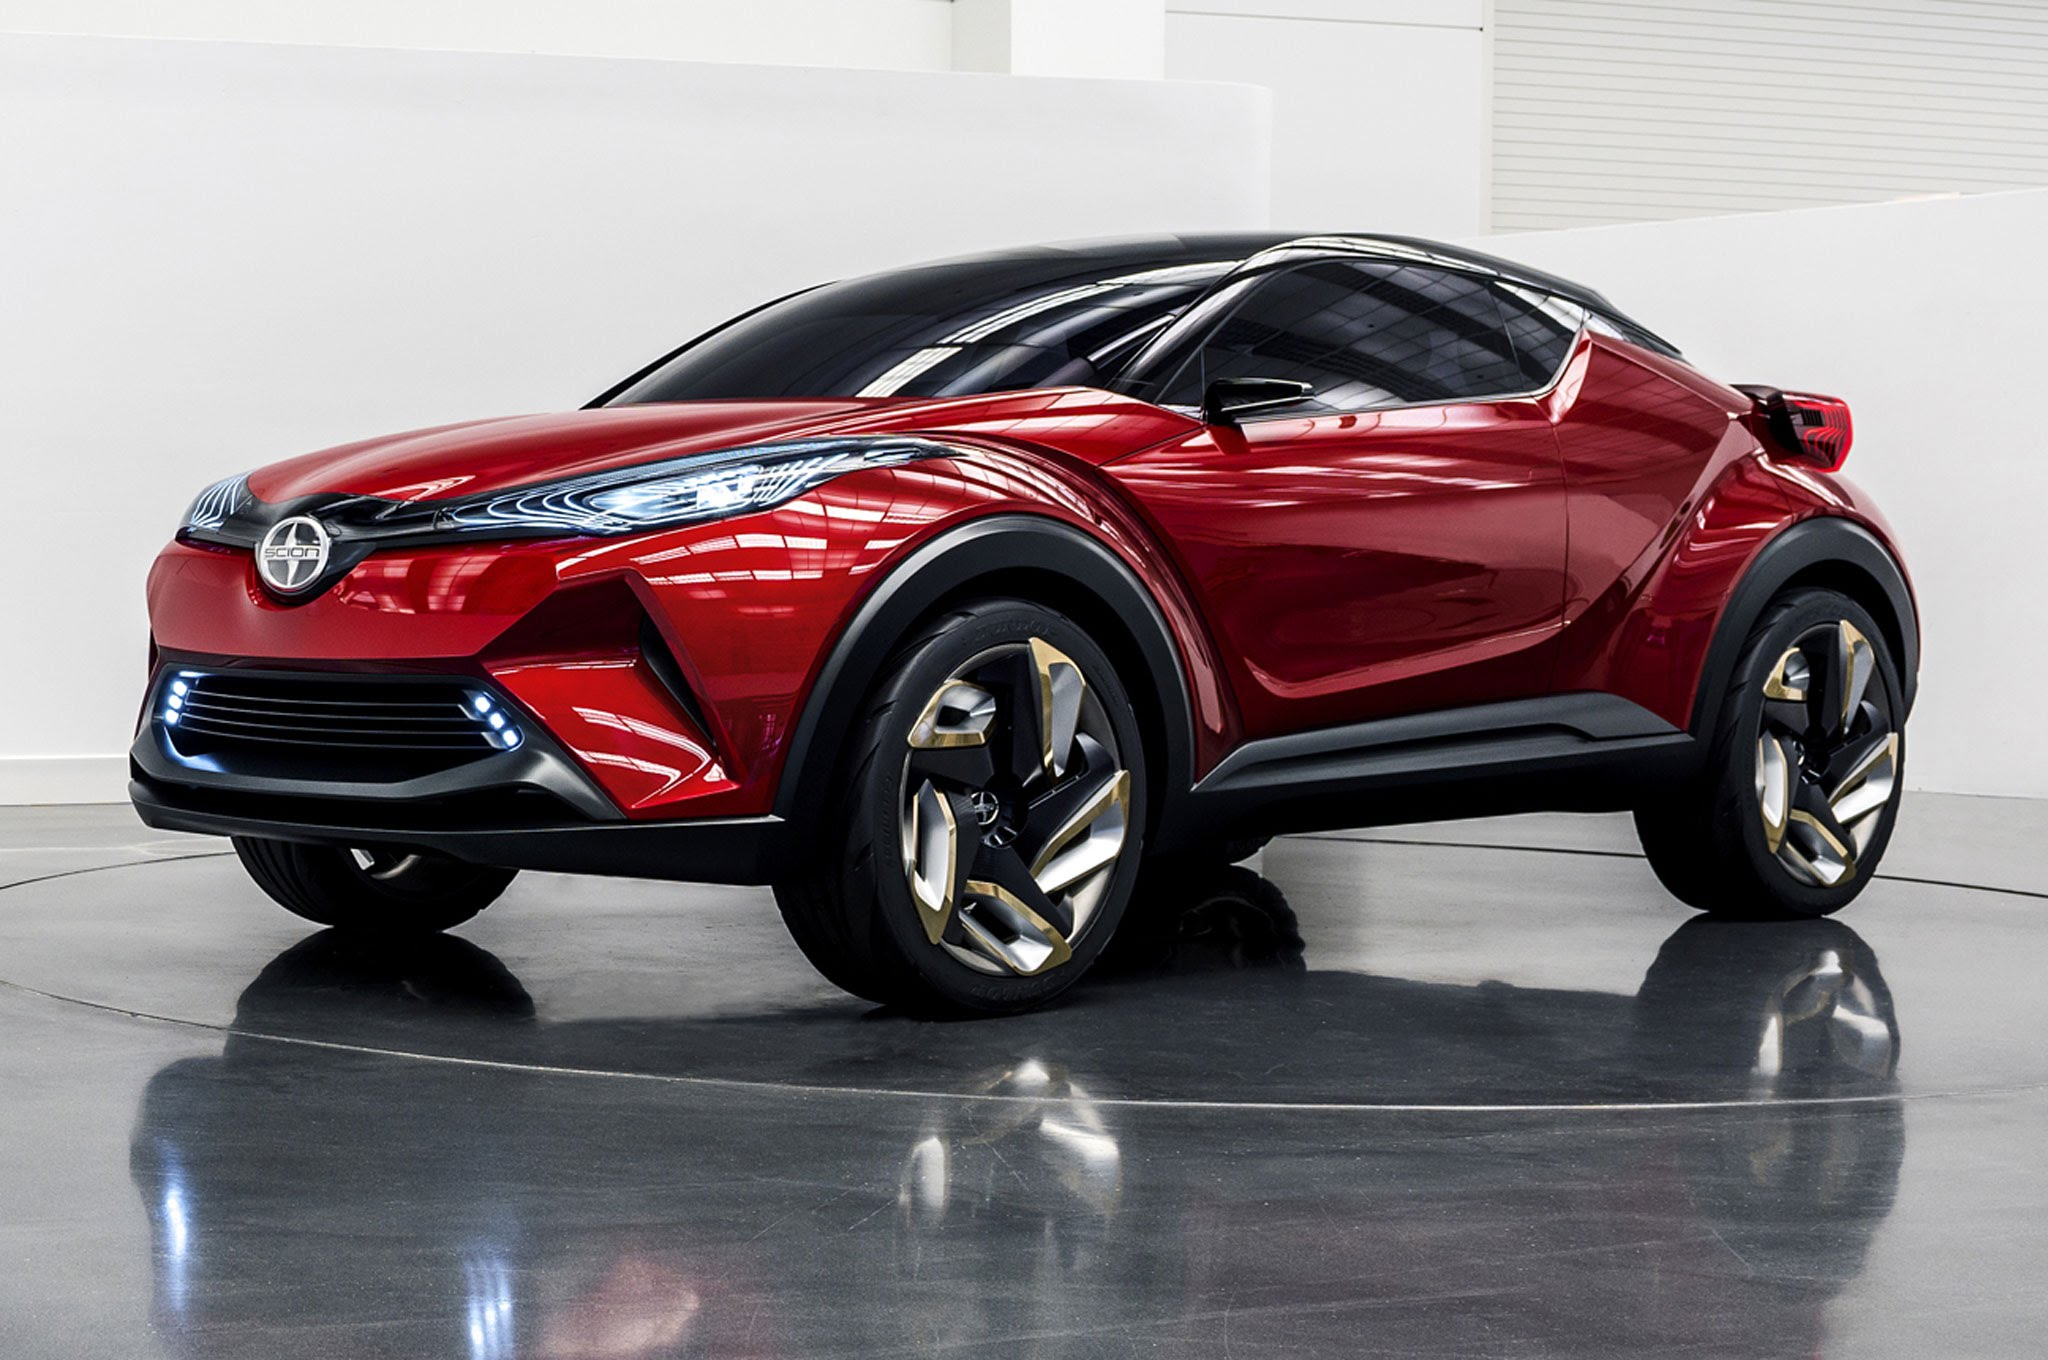 suv sema rides hp s the worlds land photo this toyota fastest is world mph speed cruiser